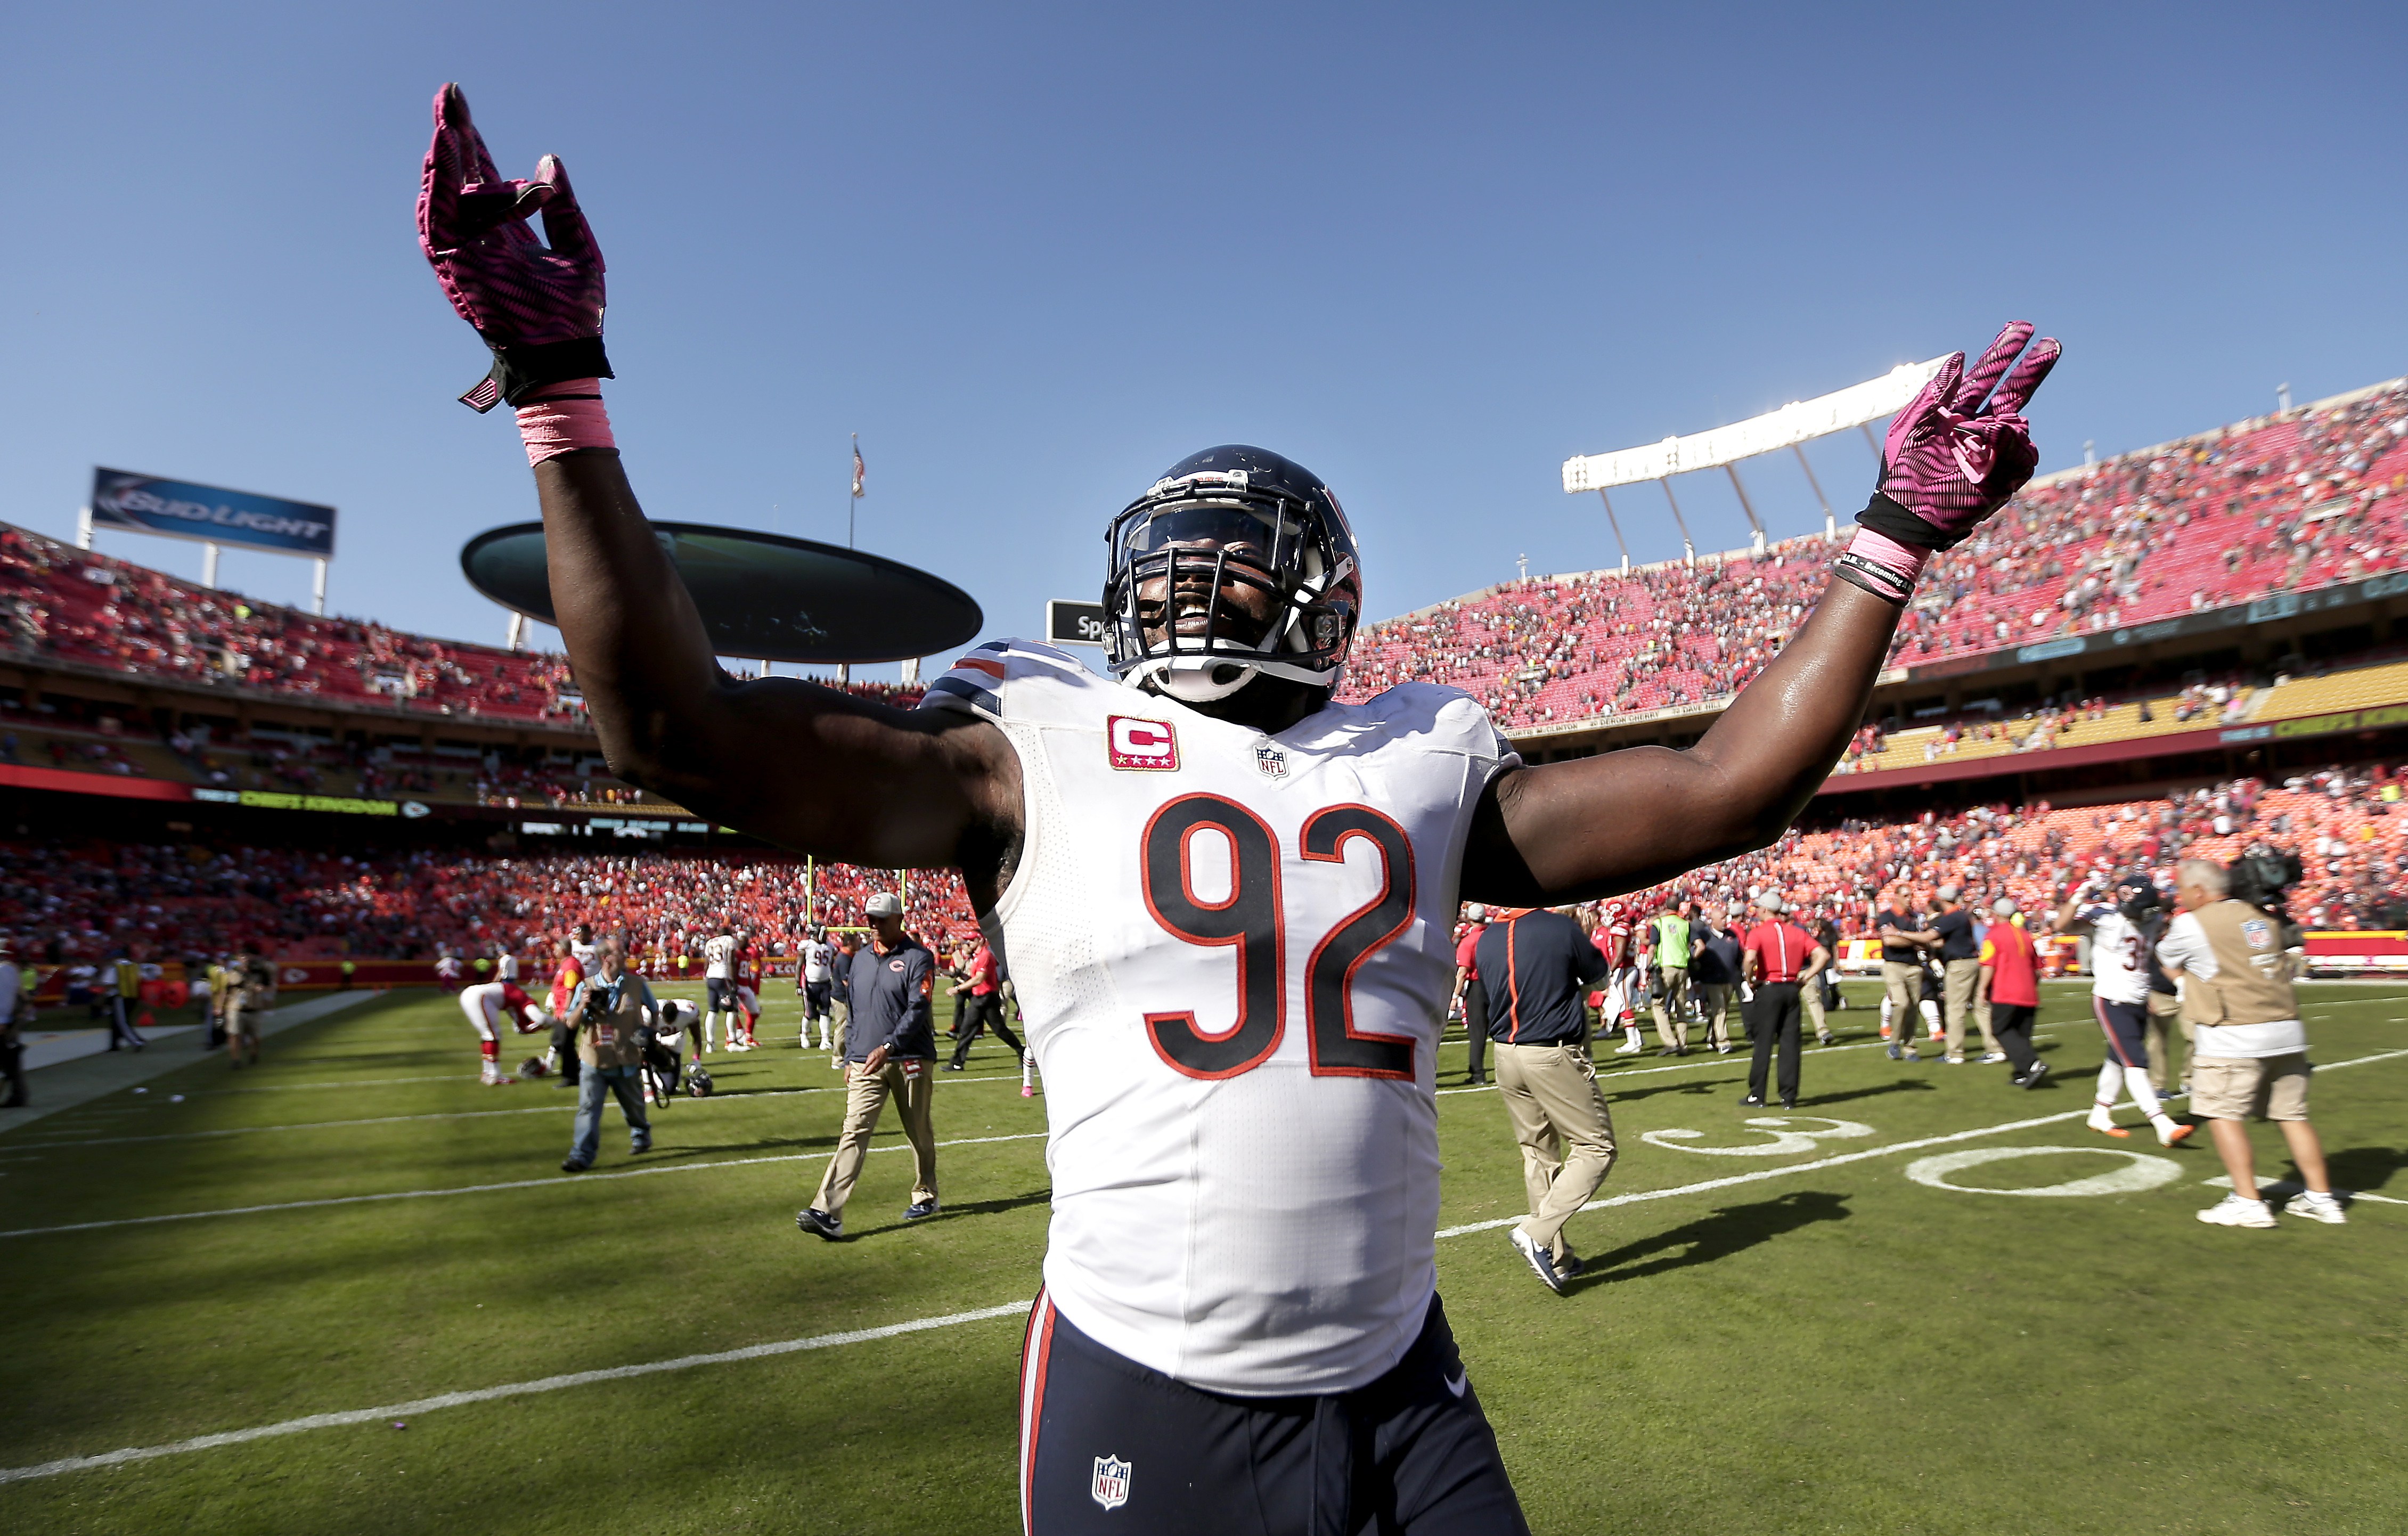 Chicago Bears outside linebacker Pernell McPhee (92) celebrates after an NFL football game against the Kansas City Chiefs Sunday, Oct. 11, 2015, in Kansas City, Mo. Chicago won 18-17. (AP Photo/Charlie Riedel)